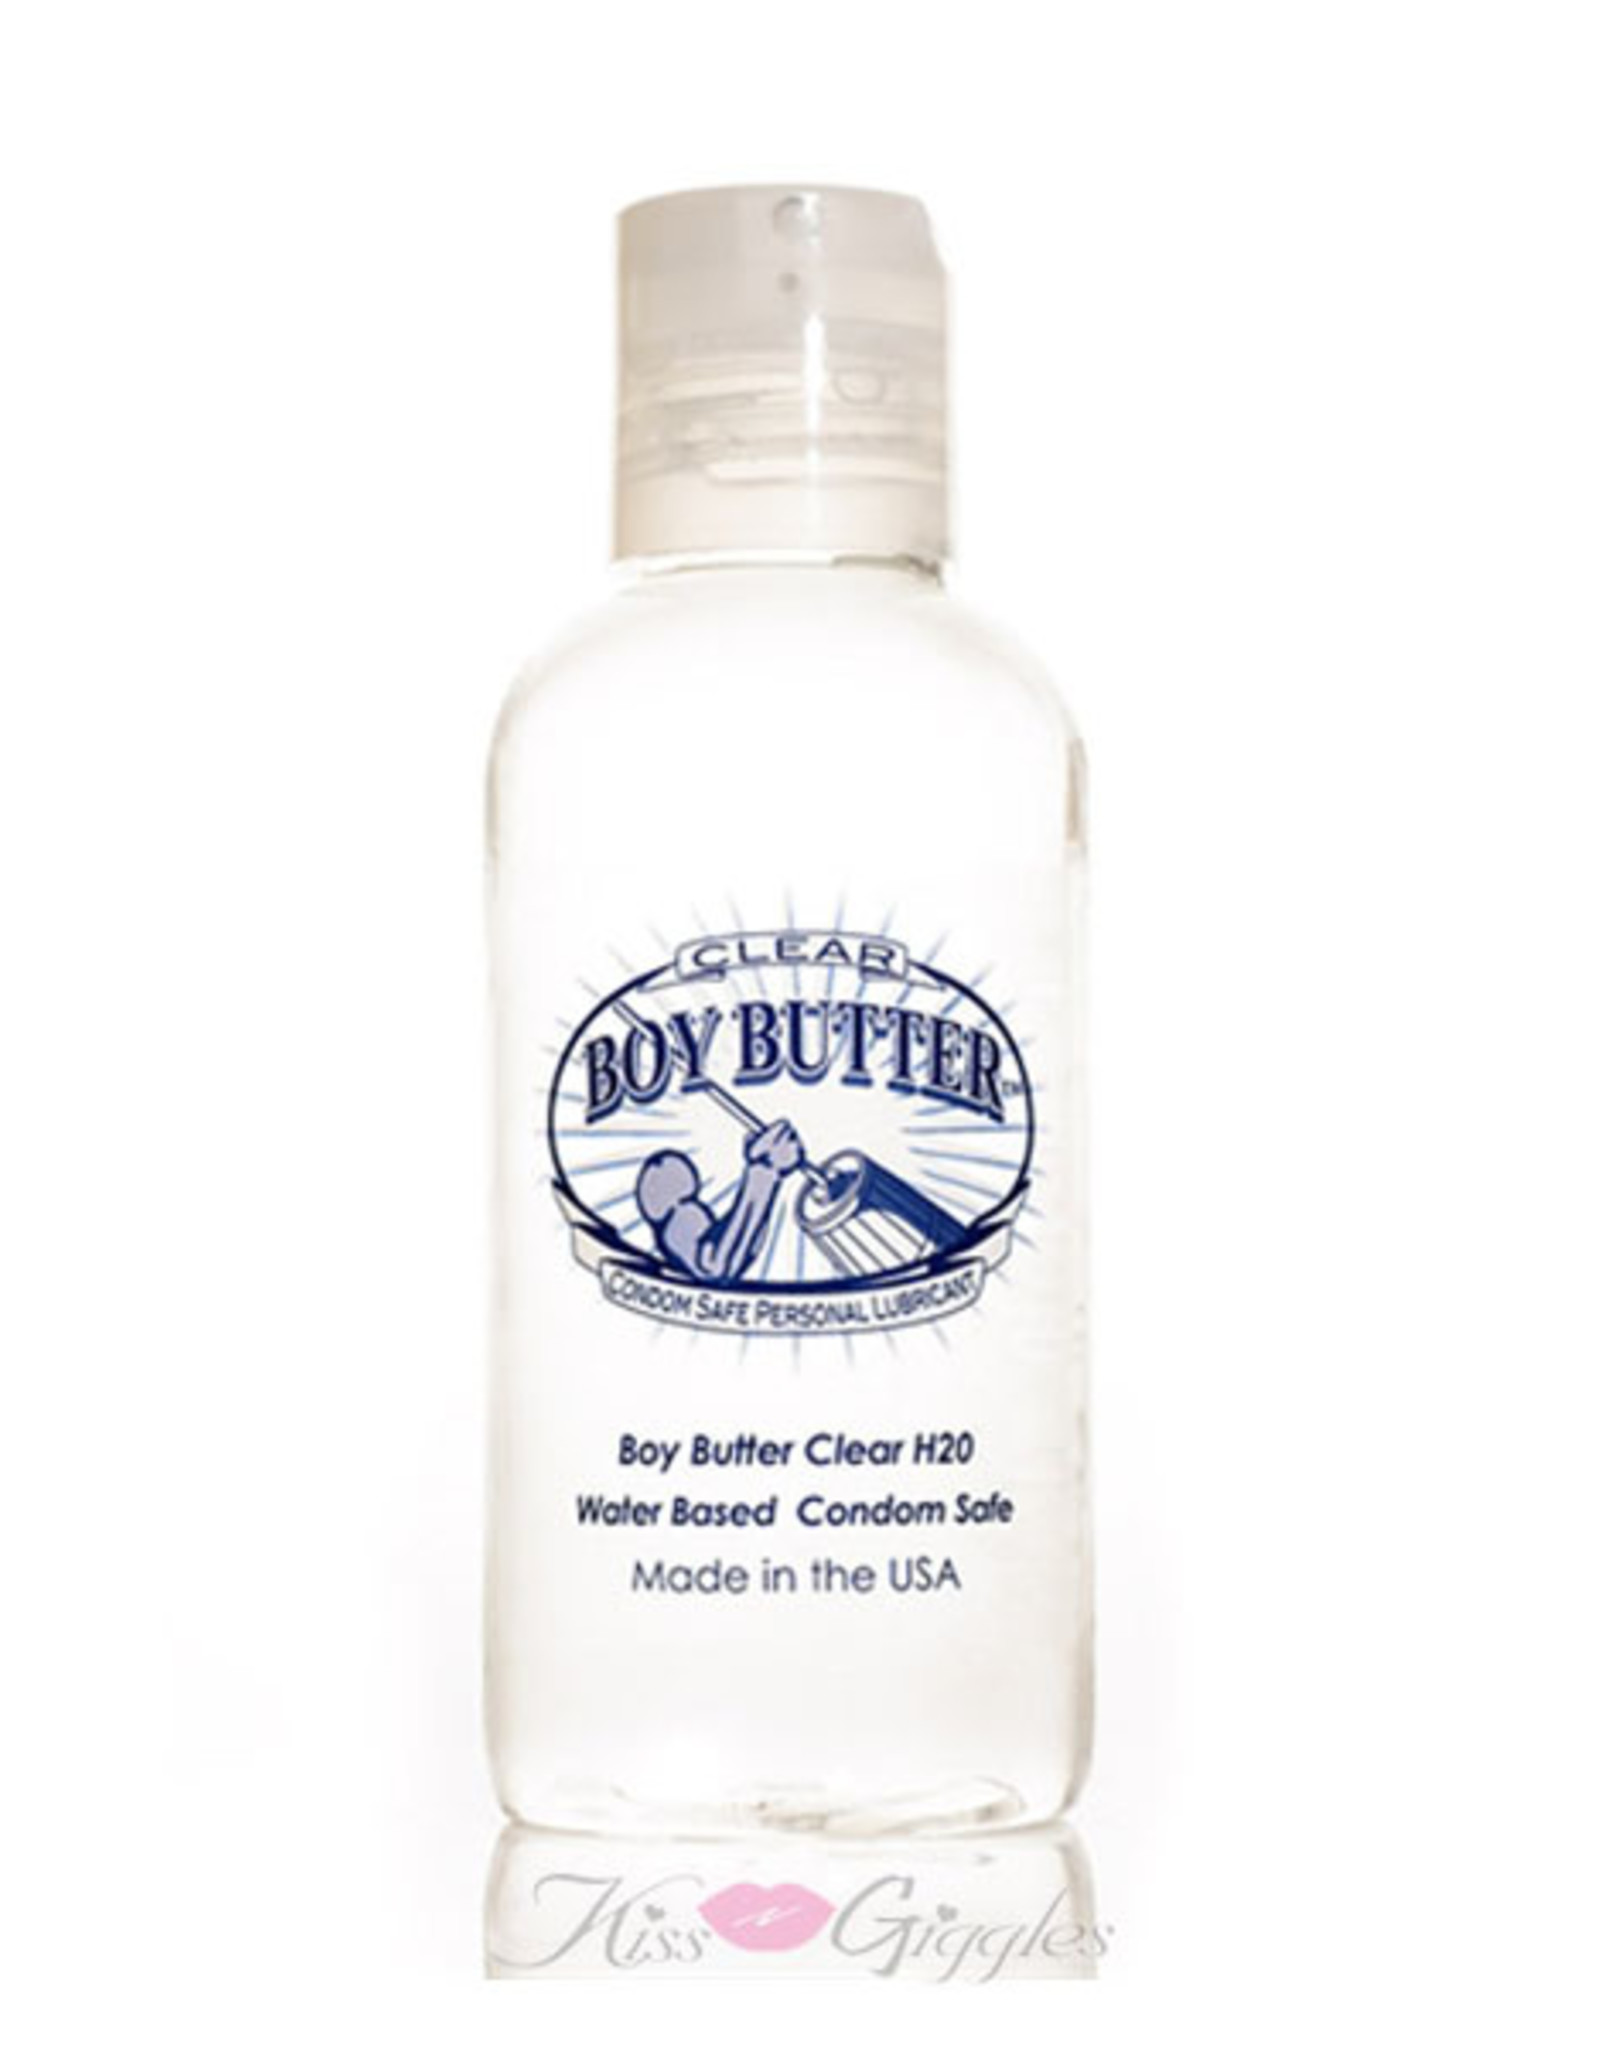 BOY BUTTER - CLEAR WITH INVISIGEL - 4OZ